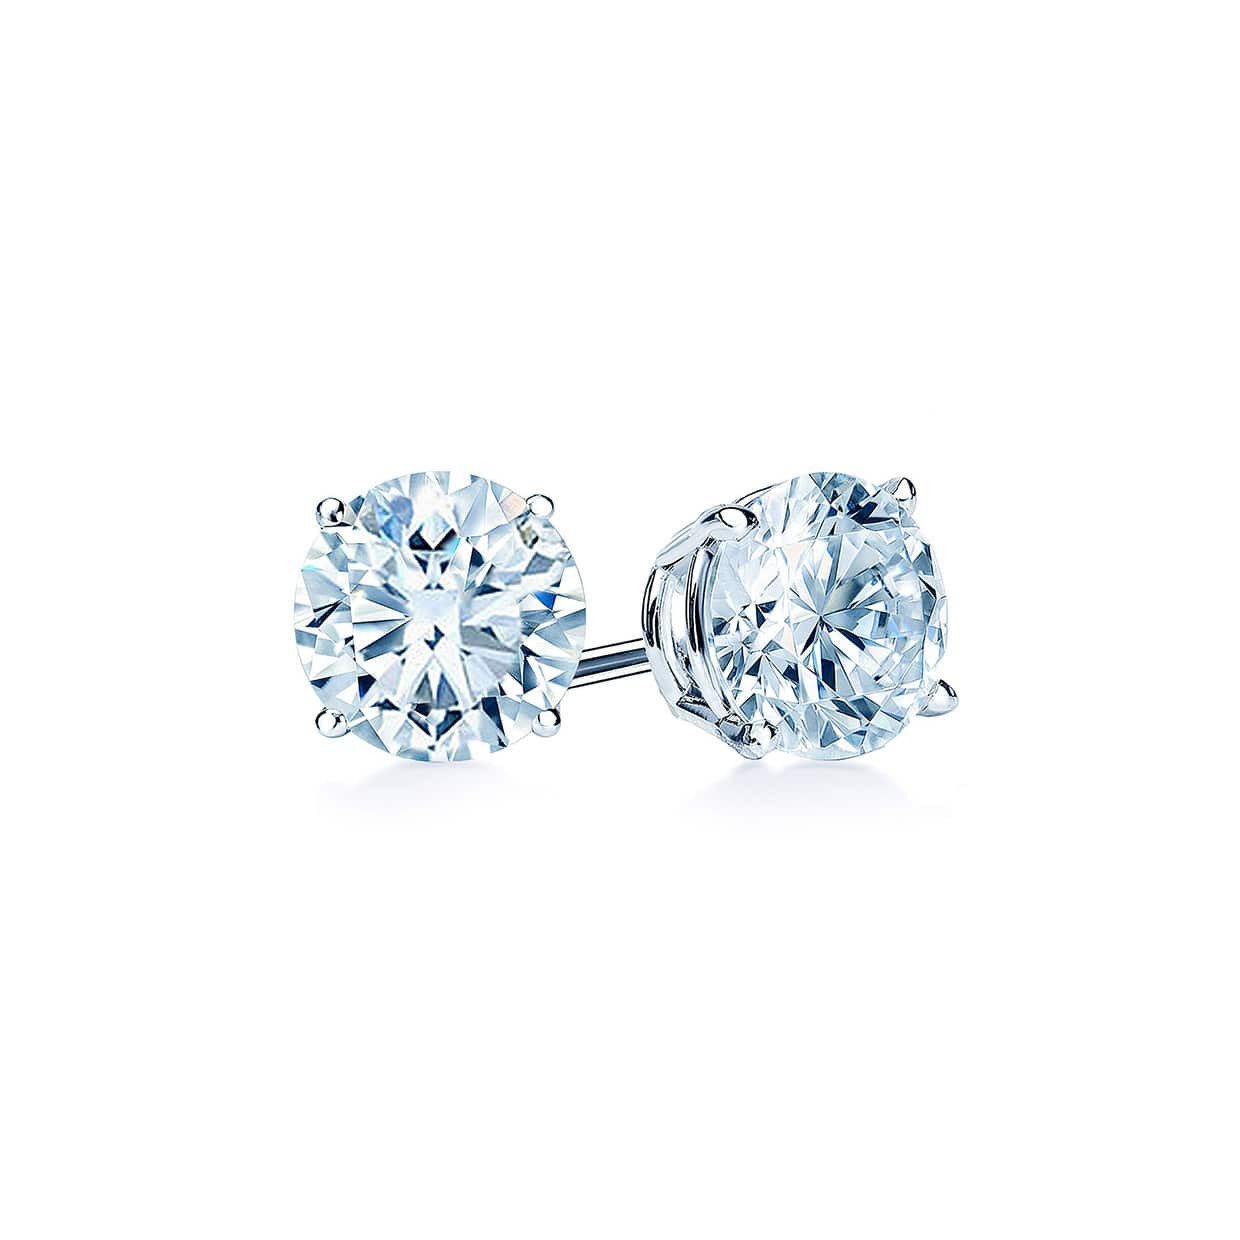 Oxford Classic Silver Solitaire Earrings - Abelstedt